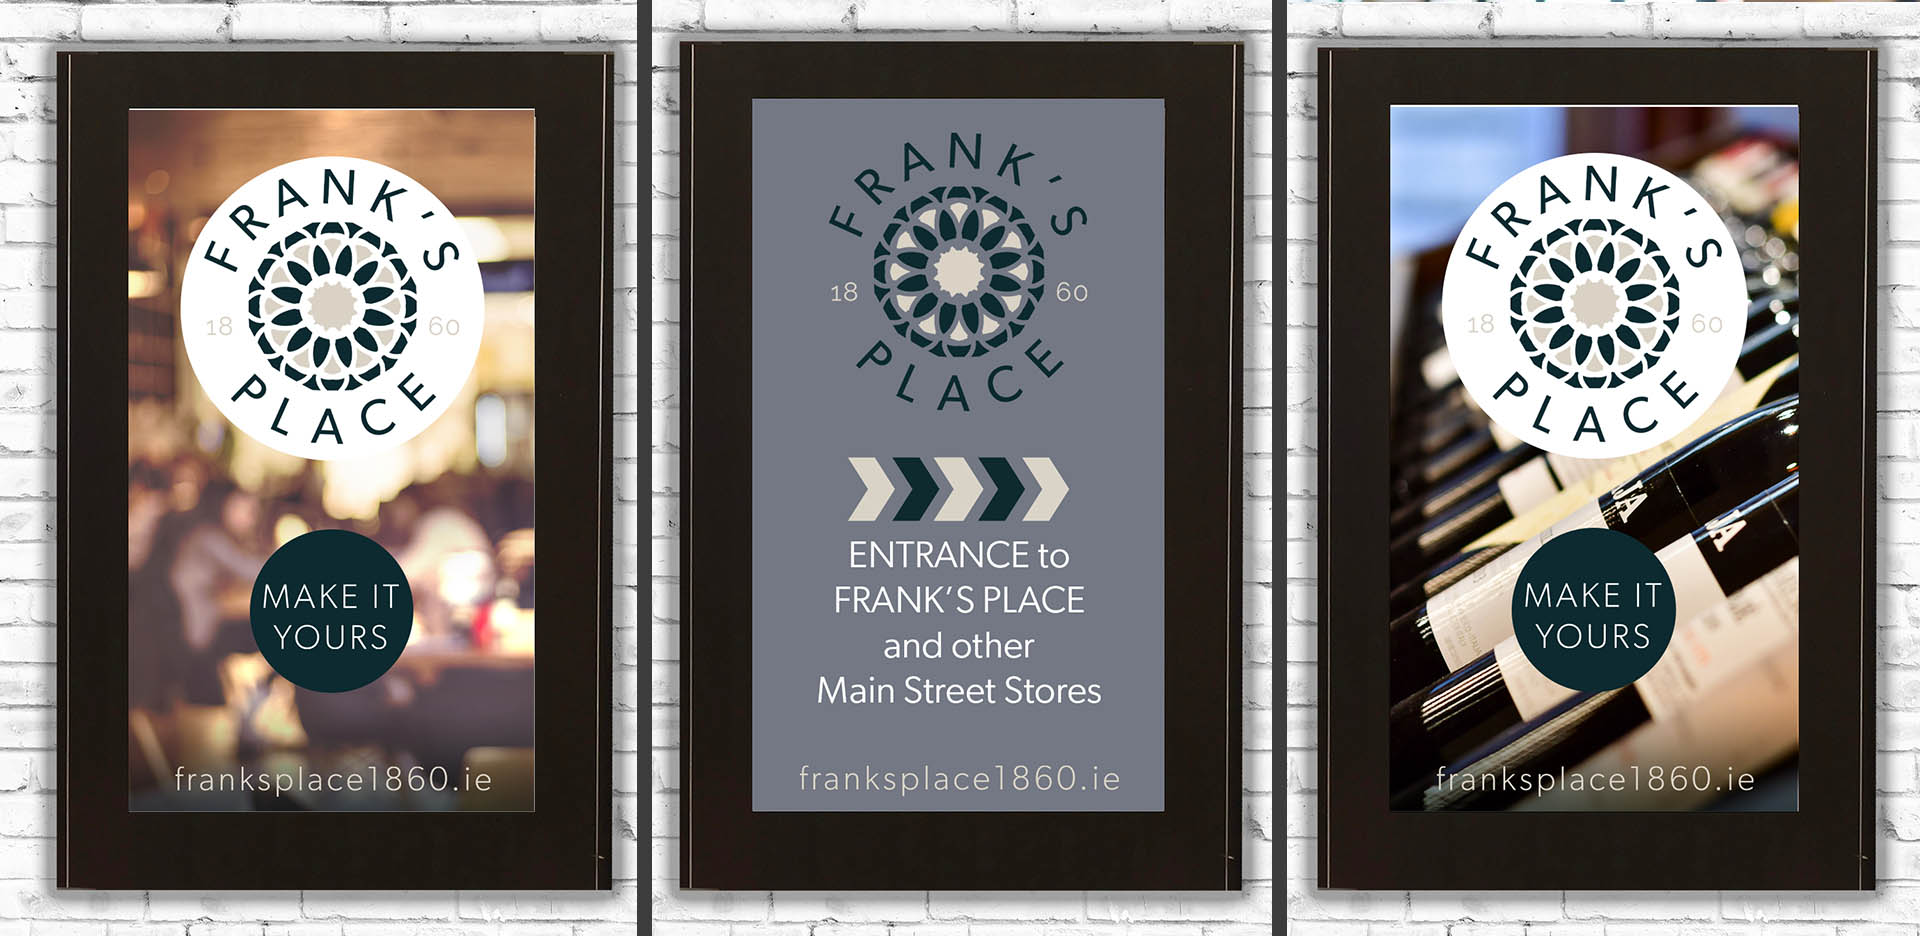 Franks Place Digital Signage